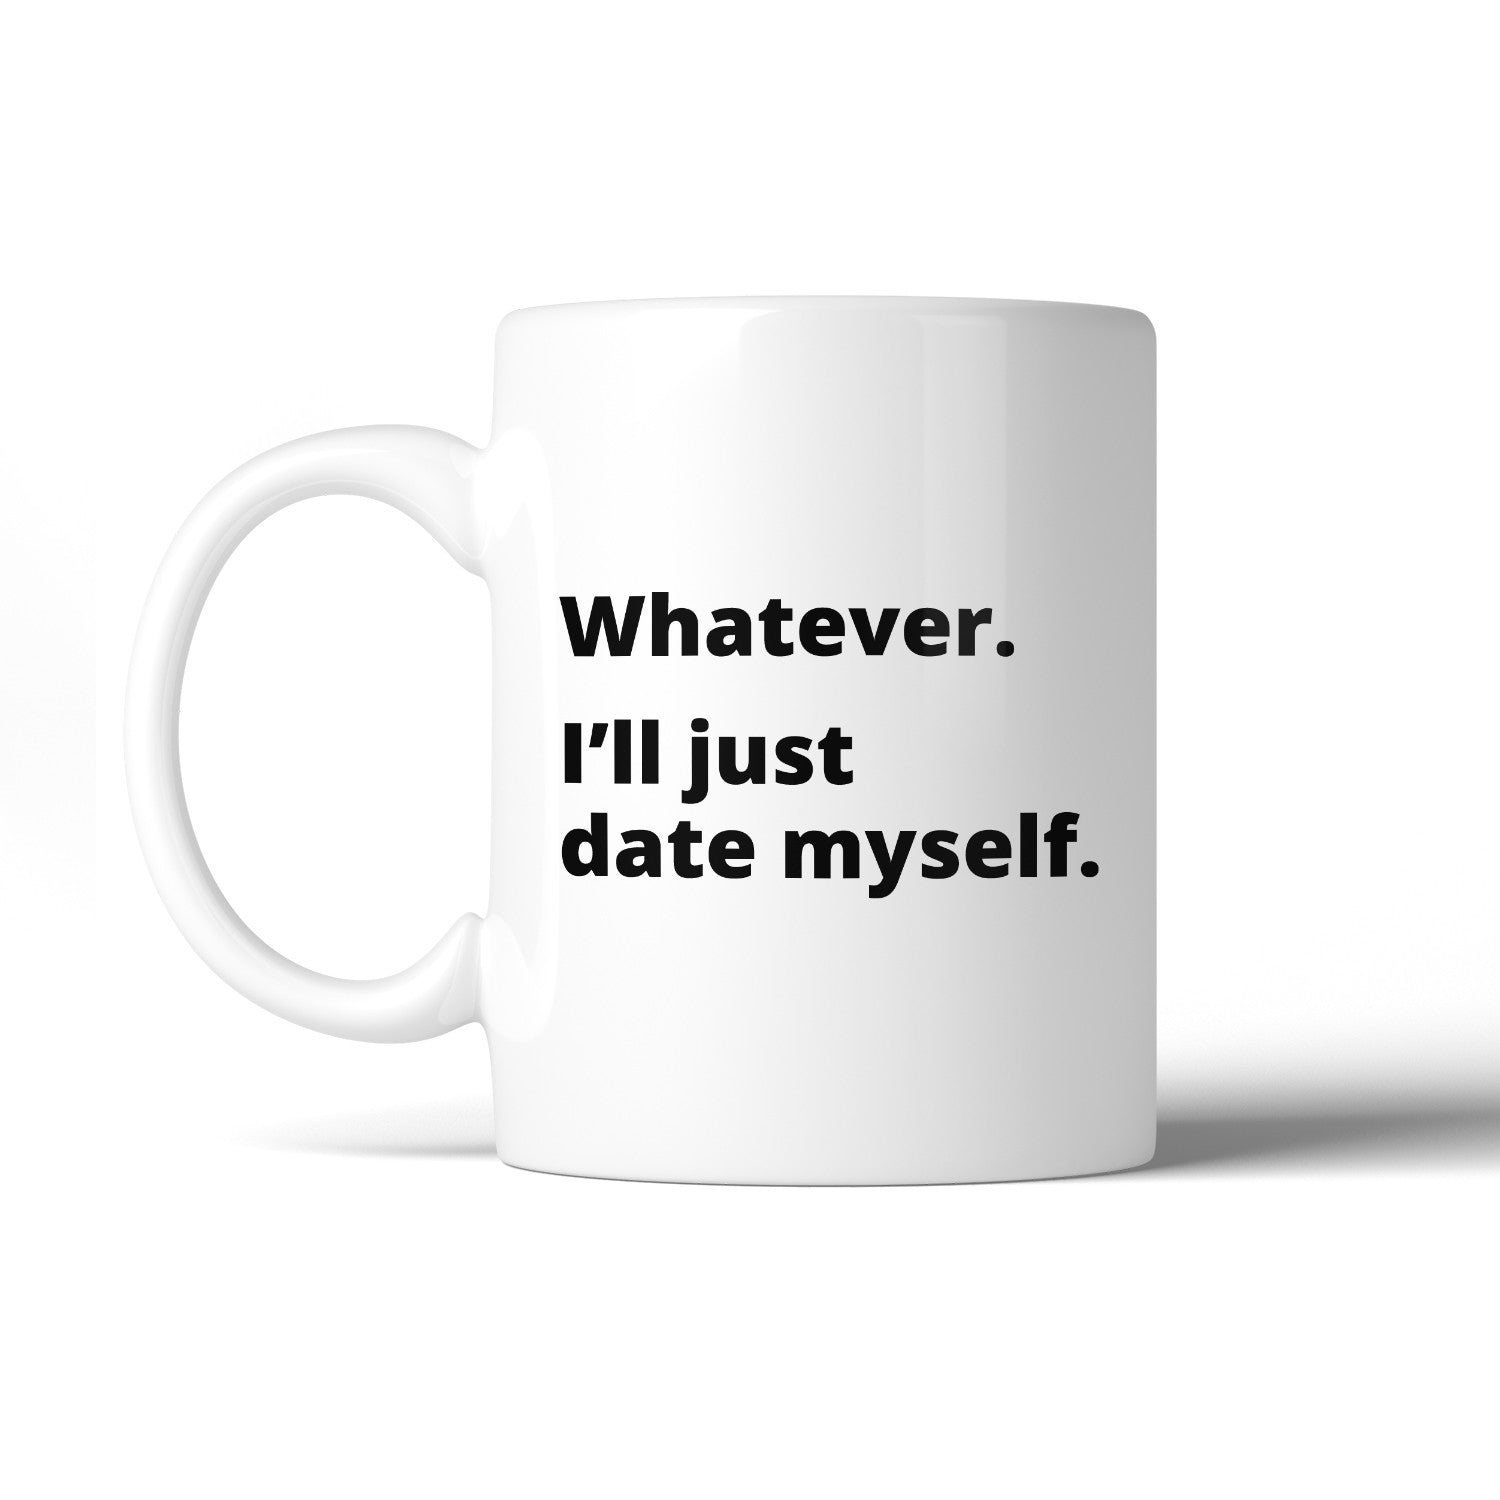 Quotes About Coffee And Friendship Date Myself Ceramic Coffee Mug 11Oz Funny Quote Single Friends